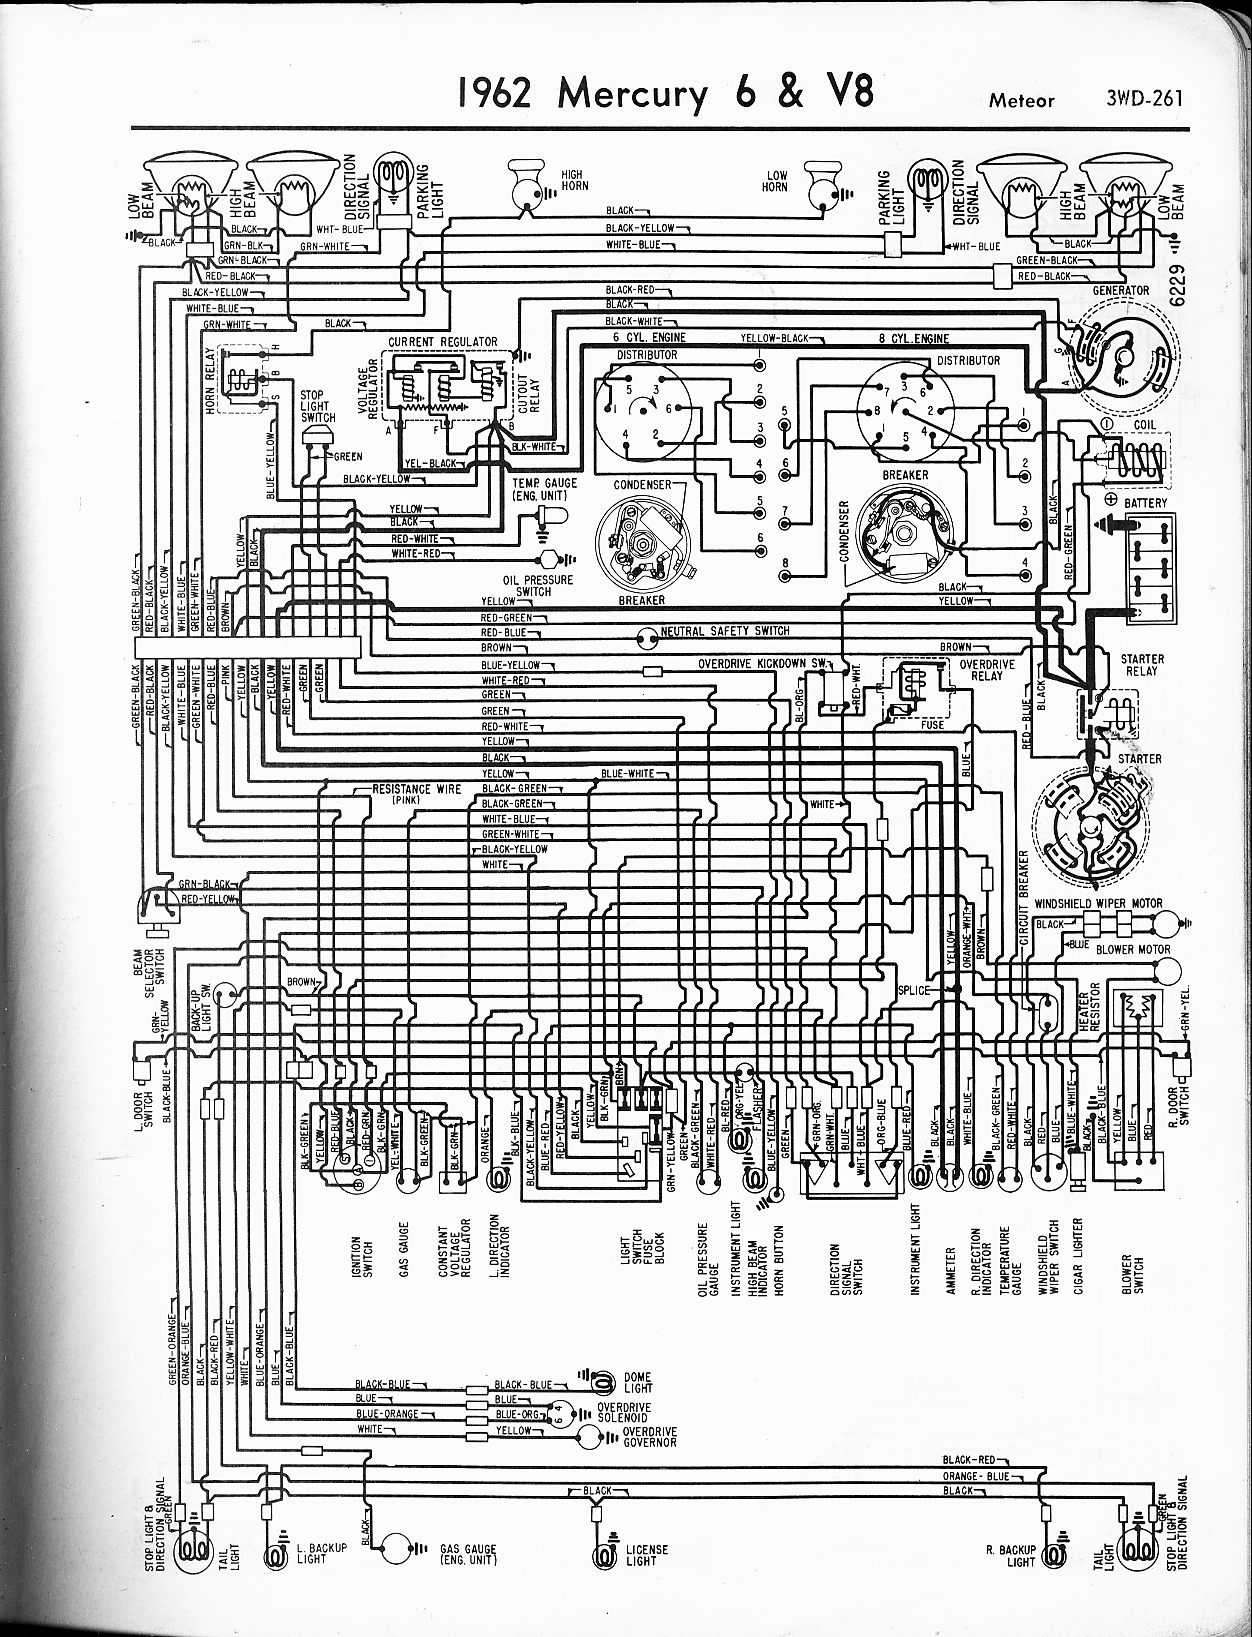 mercury wiring diagrams the old car manual project rh oldcarmanualproject com 1971 mercury comet wiring diagram 1971 mercury comet wiring diagram